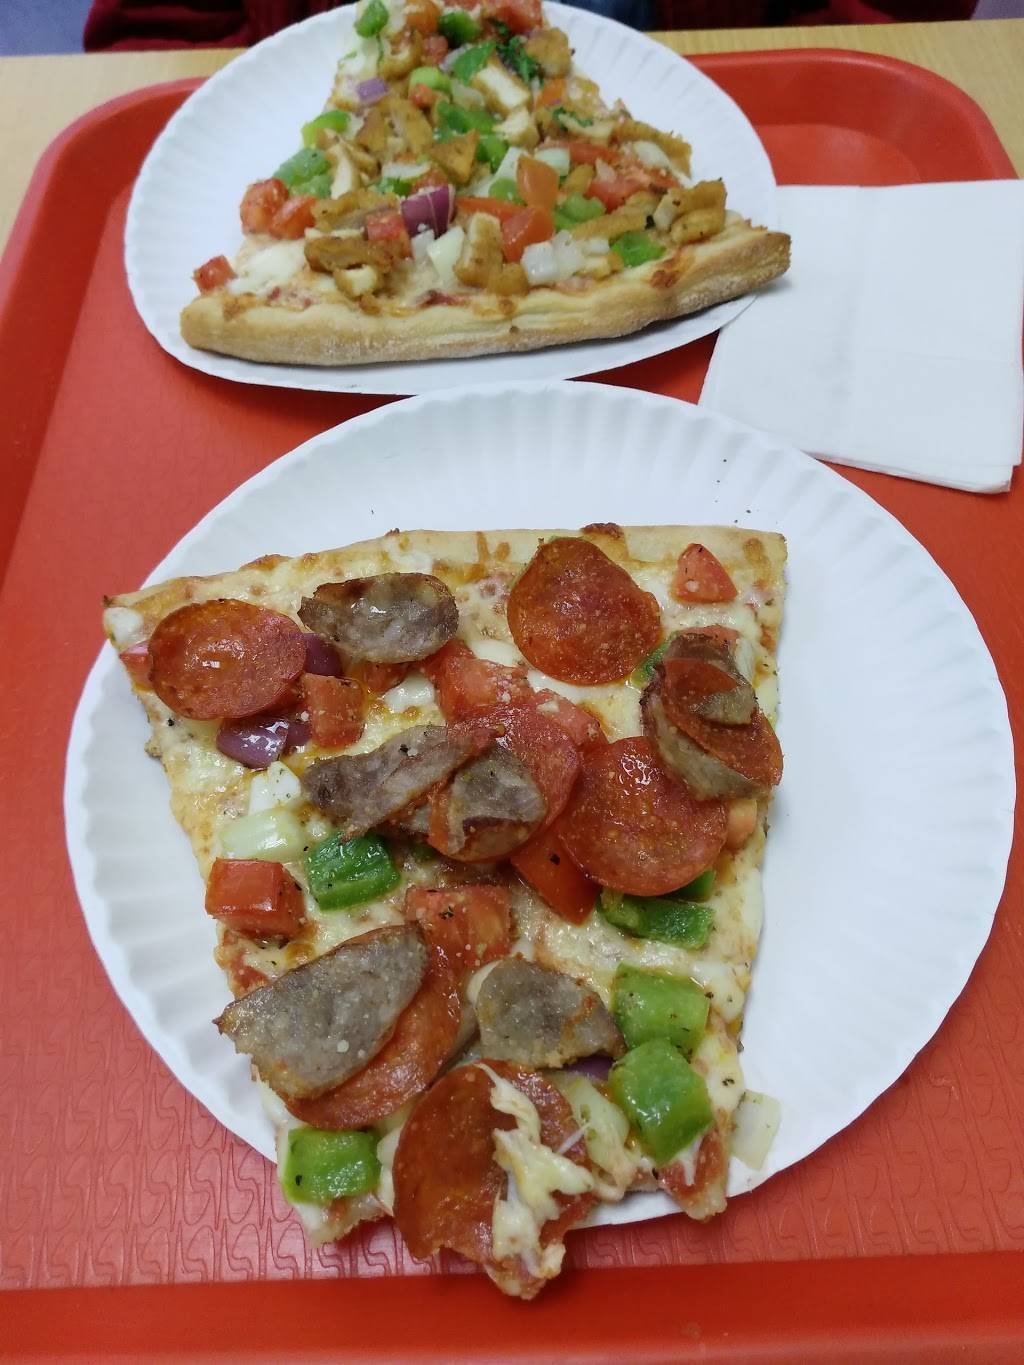 Dreamers Pizza | meal delivery | 1850 3rd Ave, New York, NY 10029, USA | 2129875414 OR +1 212-987-5414